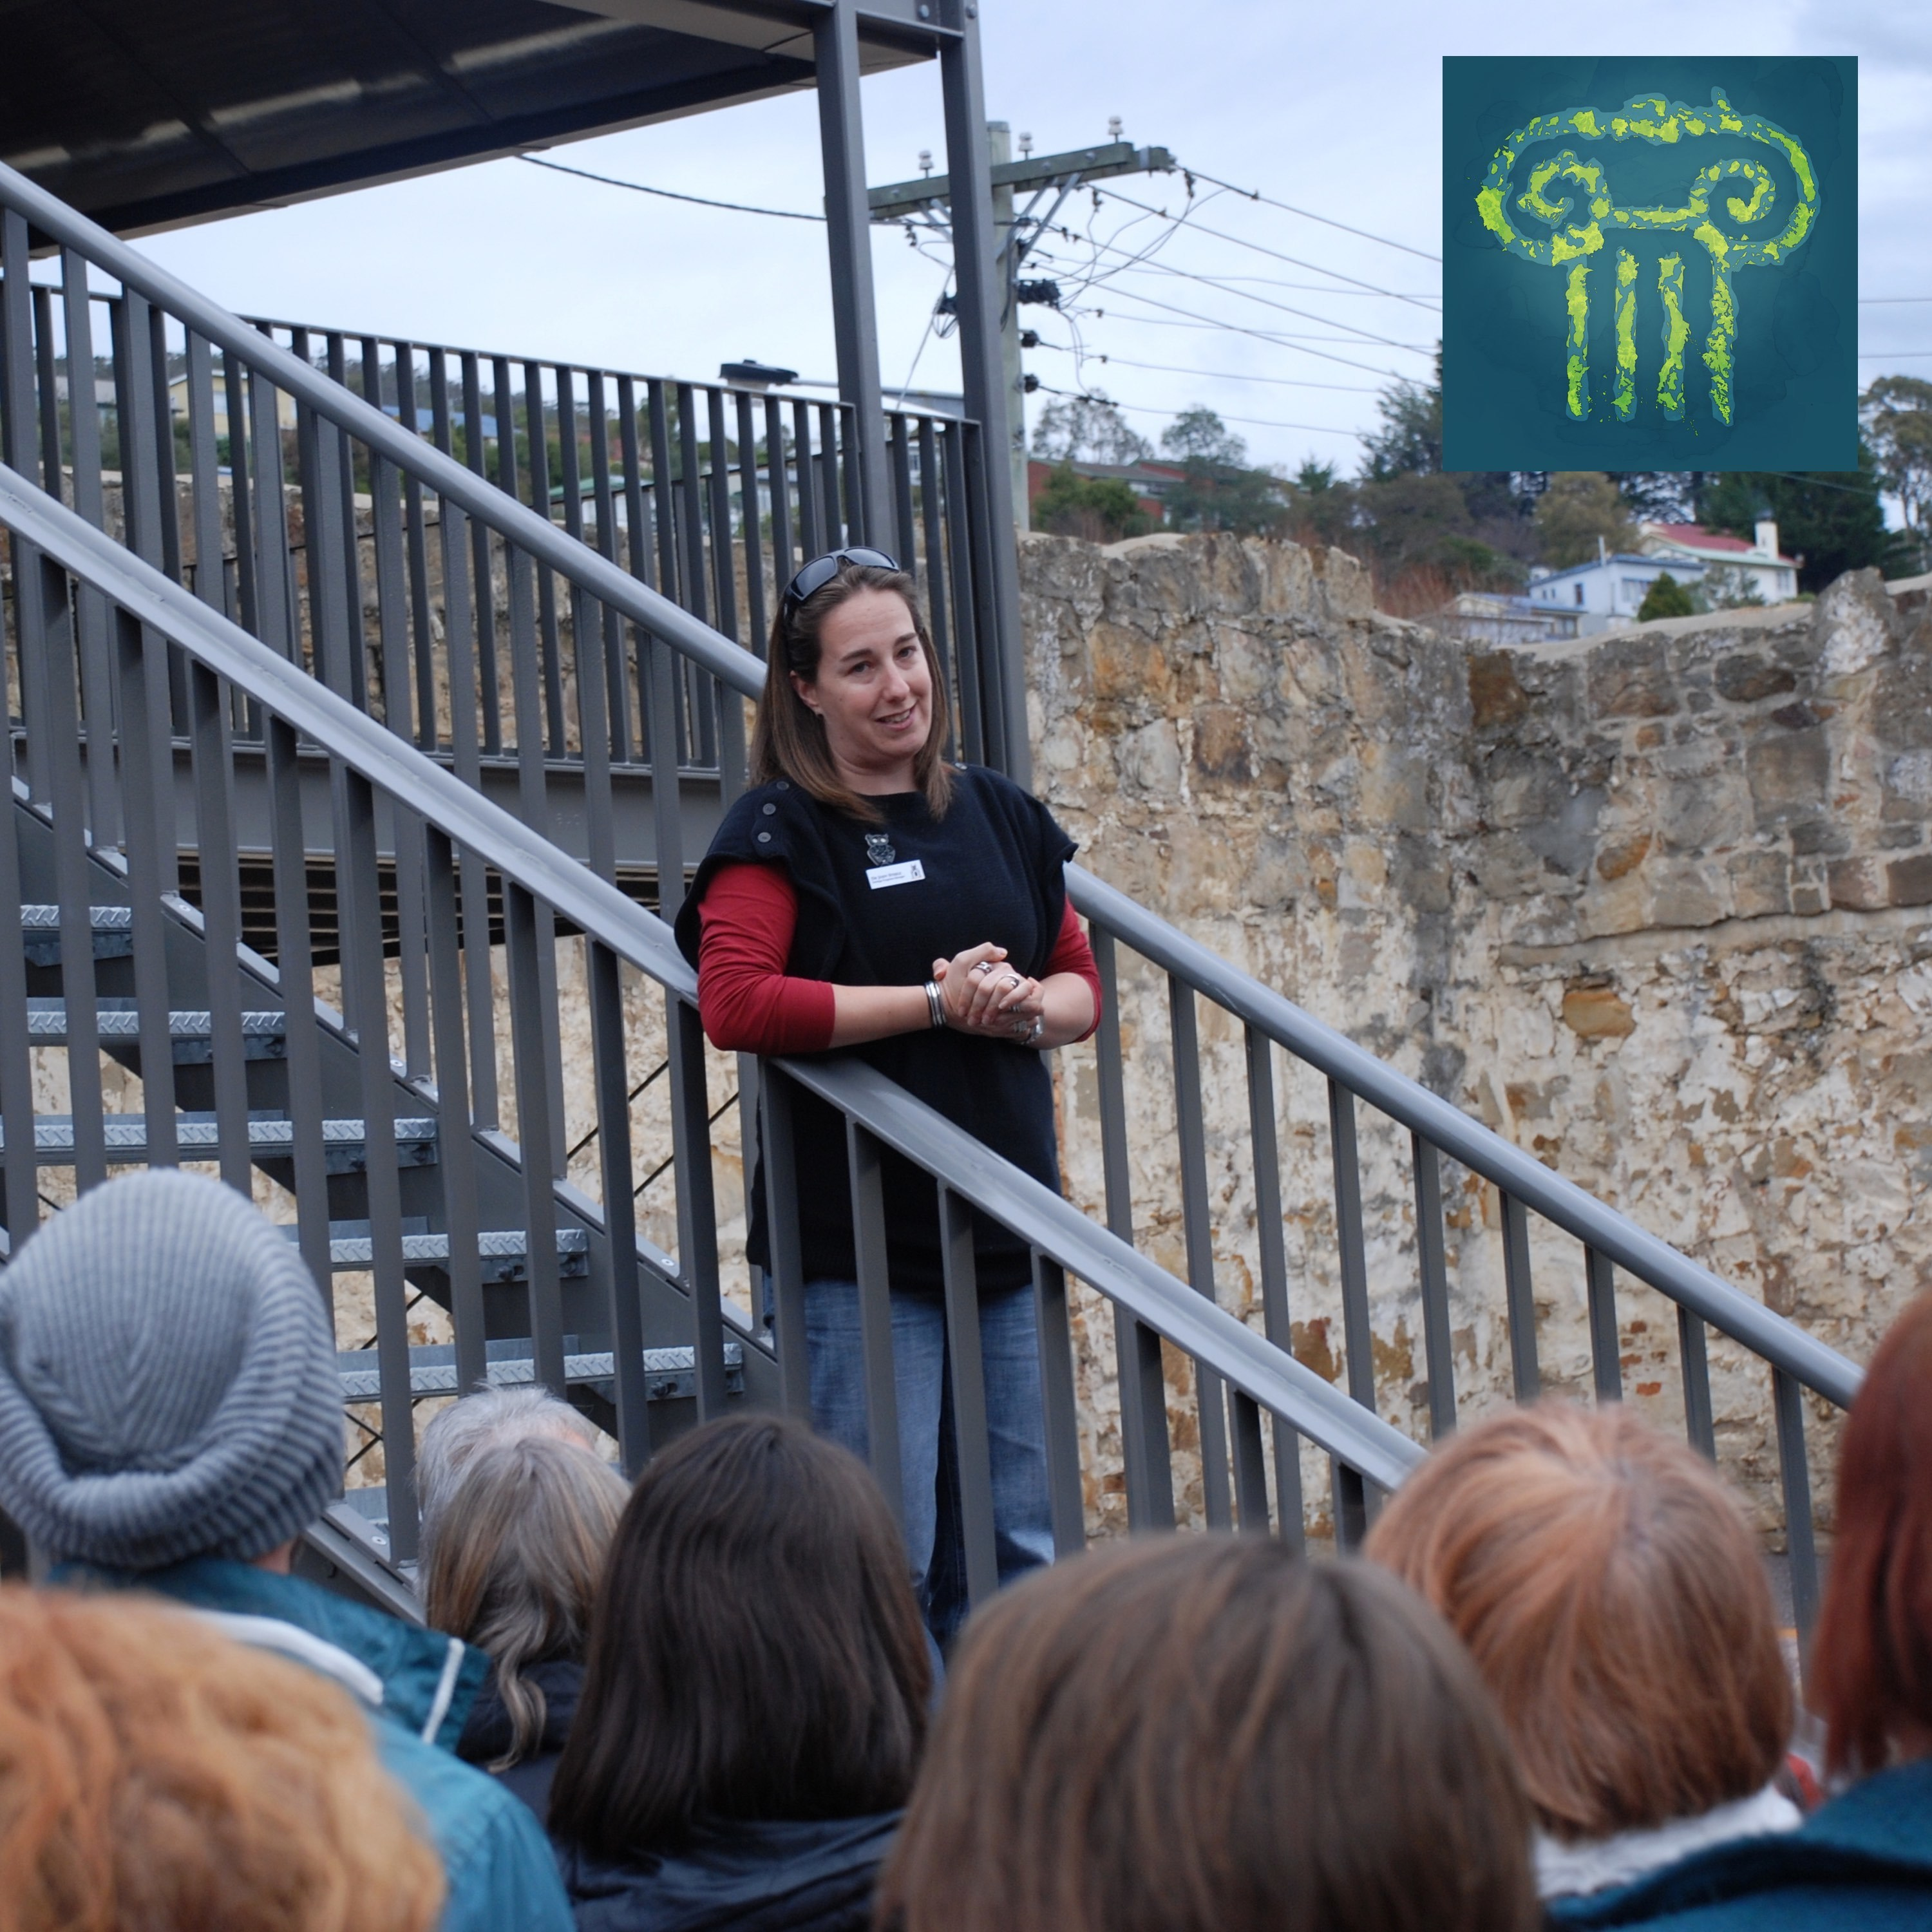 61. Jody Steele Centers the Convict Women of Tasmania's Penal Colonies at the Female Factory